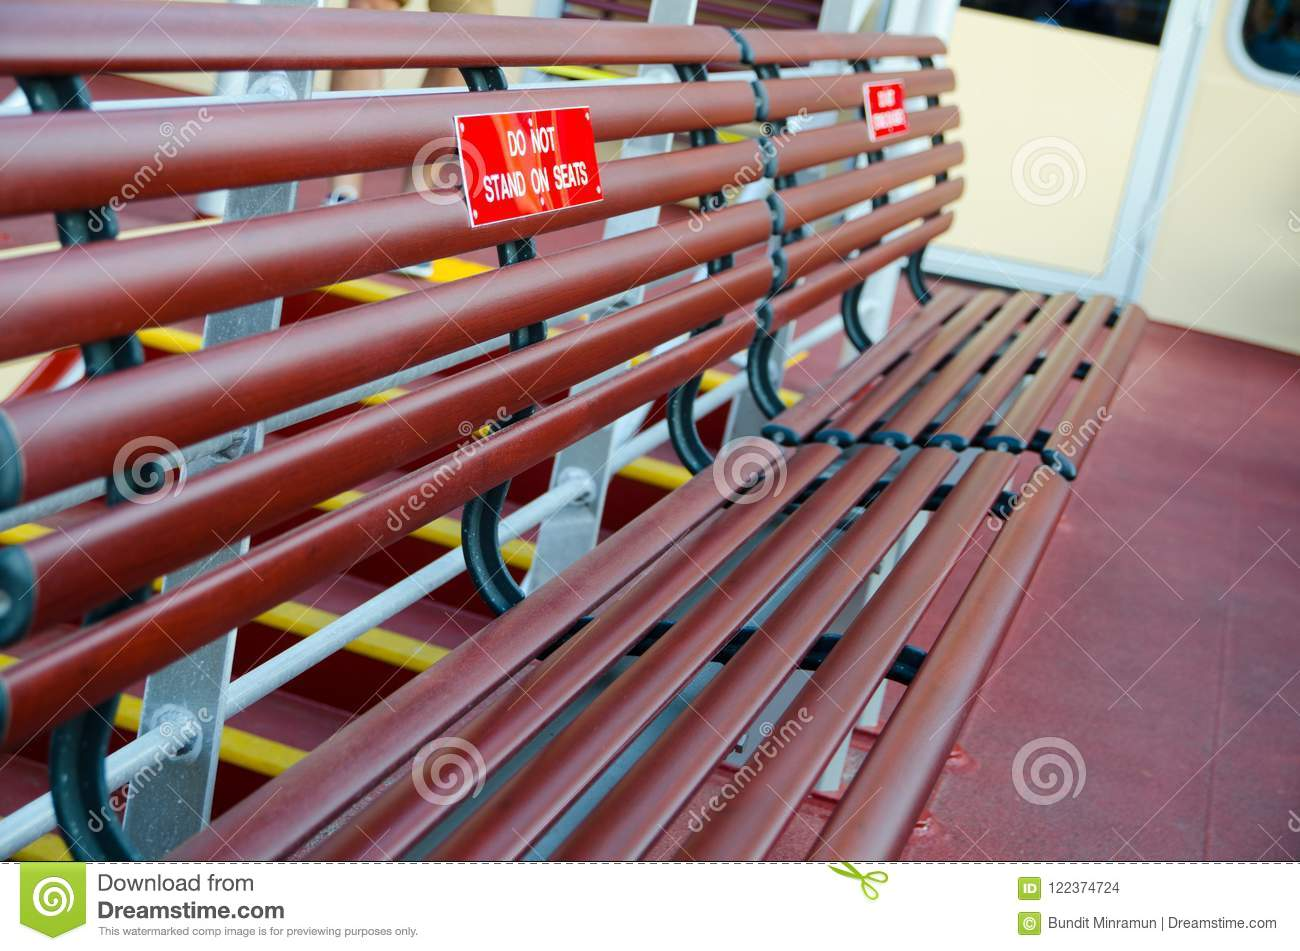 Marvelous Wooden Bench Seat On Boat Ferry Put On The Warning Sign For Pabps2019 Chair Design Images Pabps2019Com